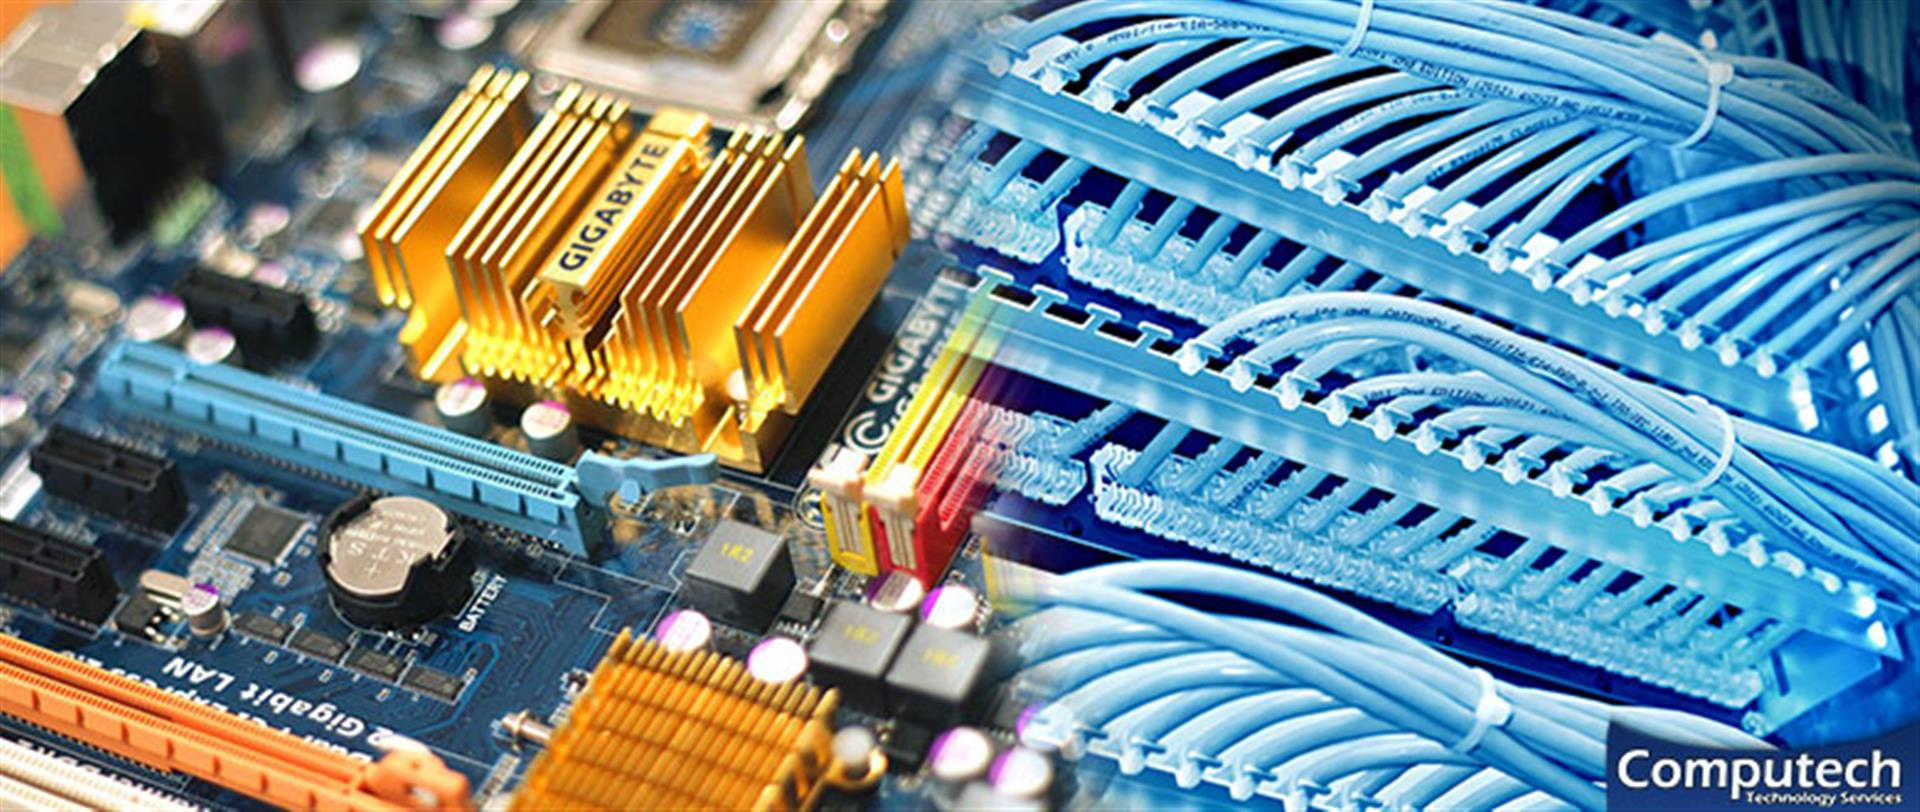 Kearney Missouri On-Site Computer PC & Printer Repairs, Networks, Voice & Data Wiring Services